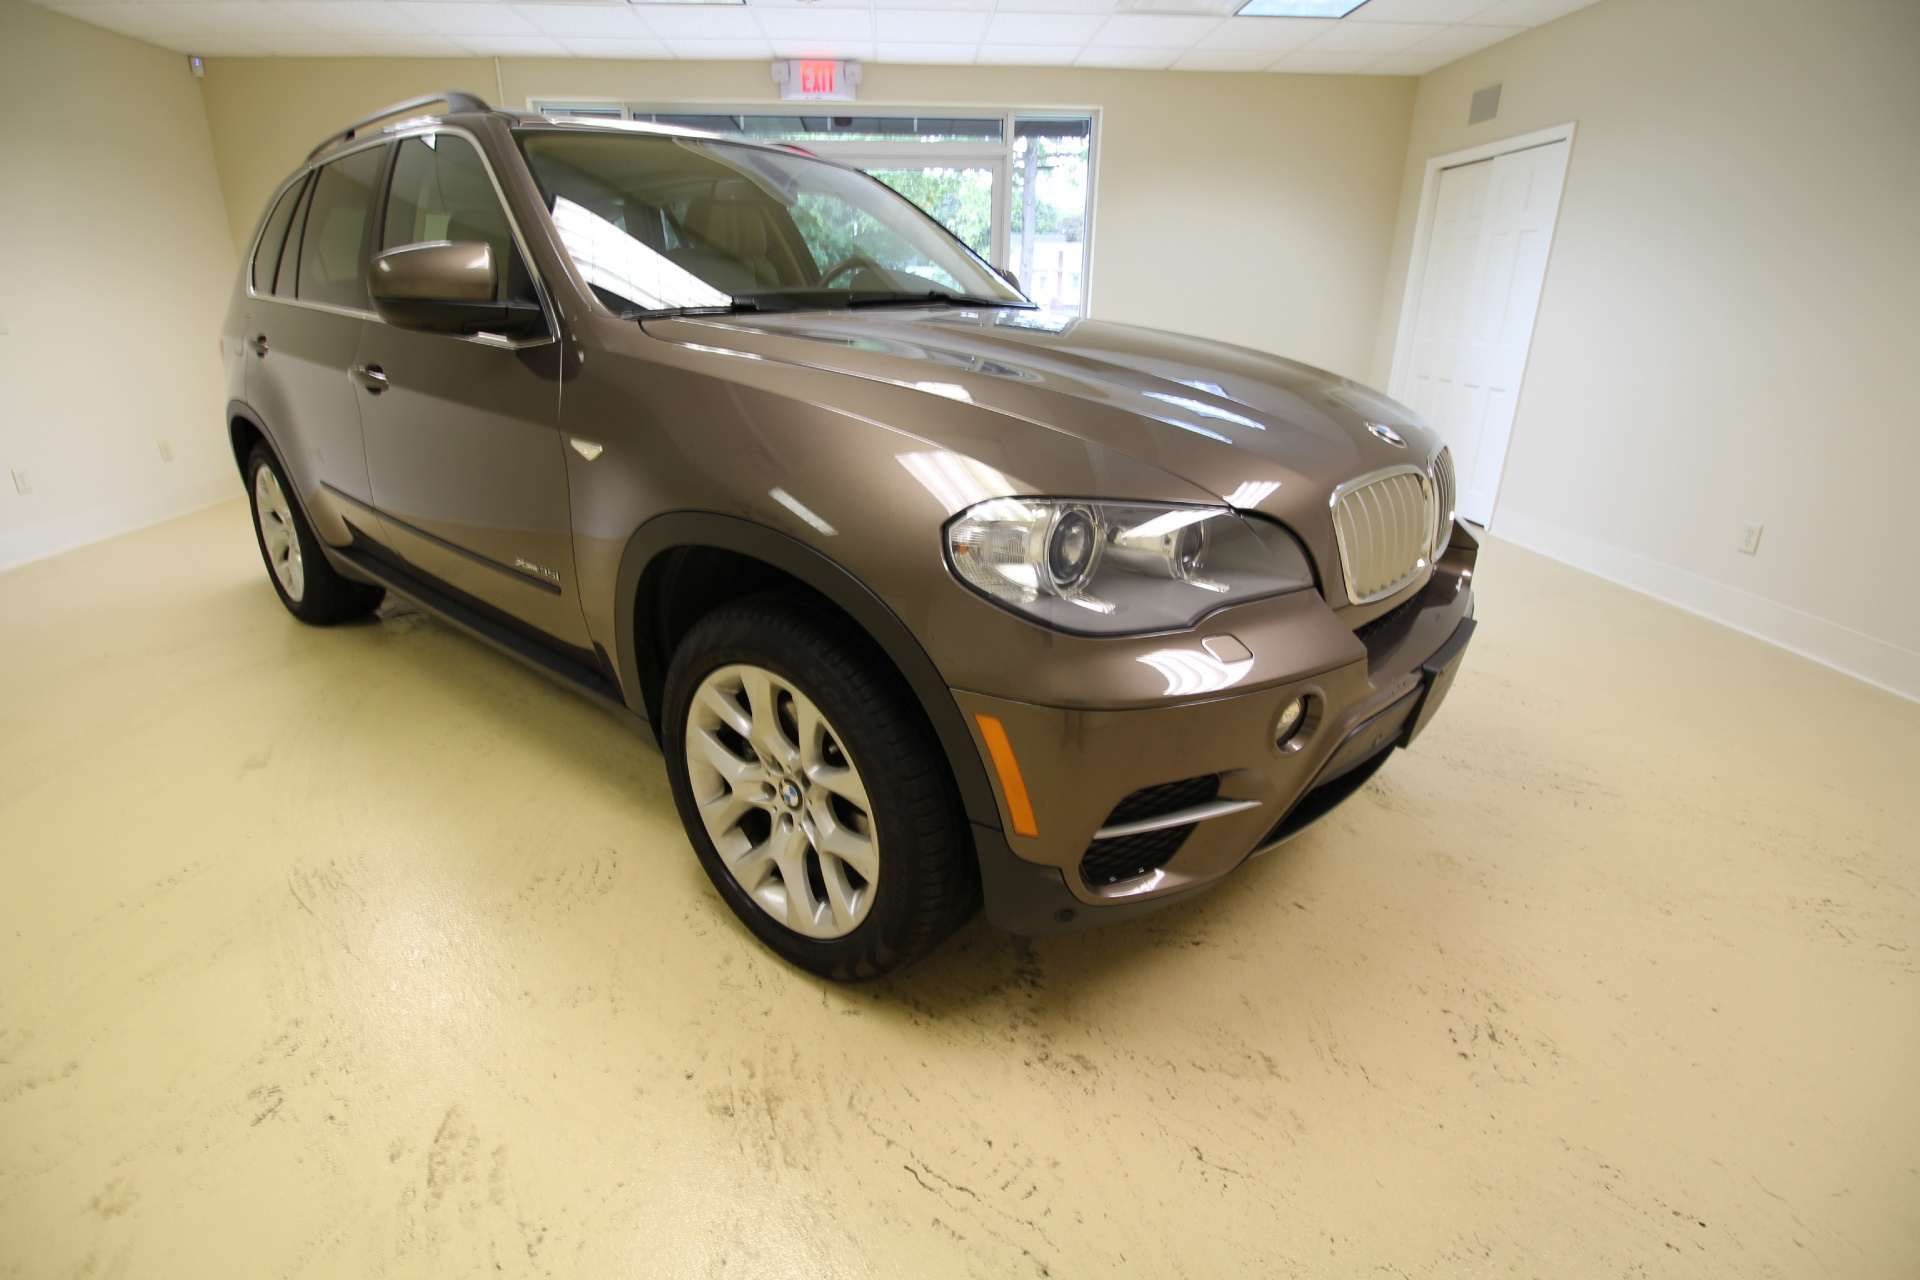 2013 bmw x5 xdrive35i stock 15170 for sale near albany ny ny bmw dealer for sale in albany. Black Bedroom Furniture Sets. Home Design Ideas